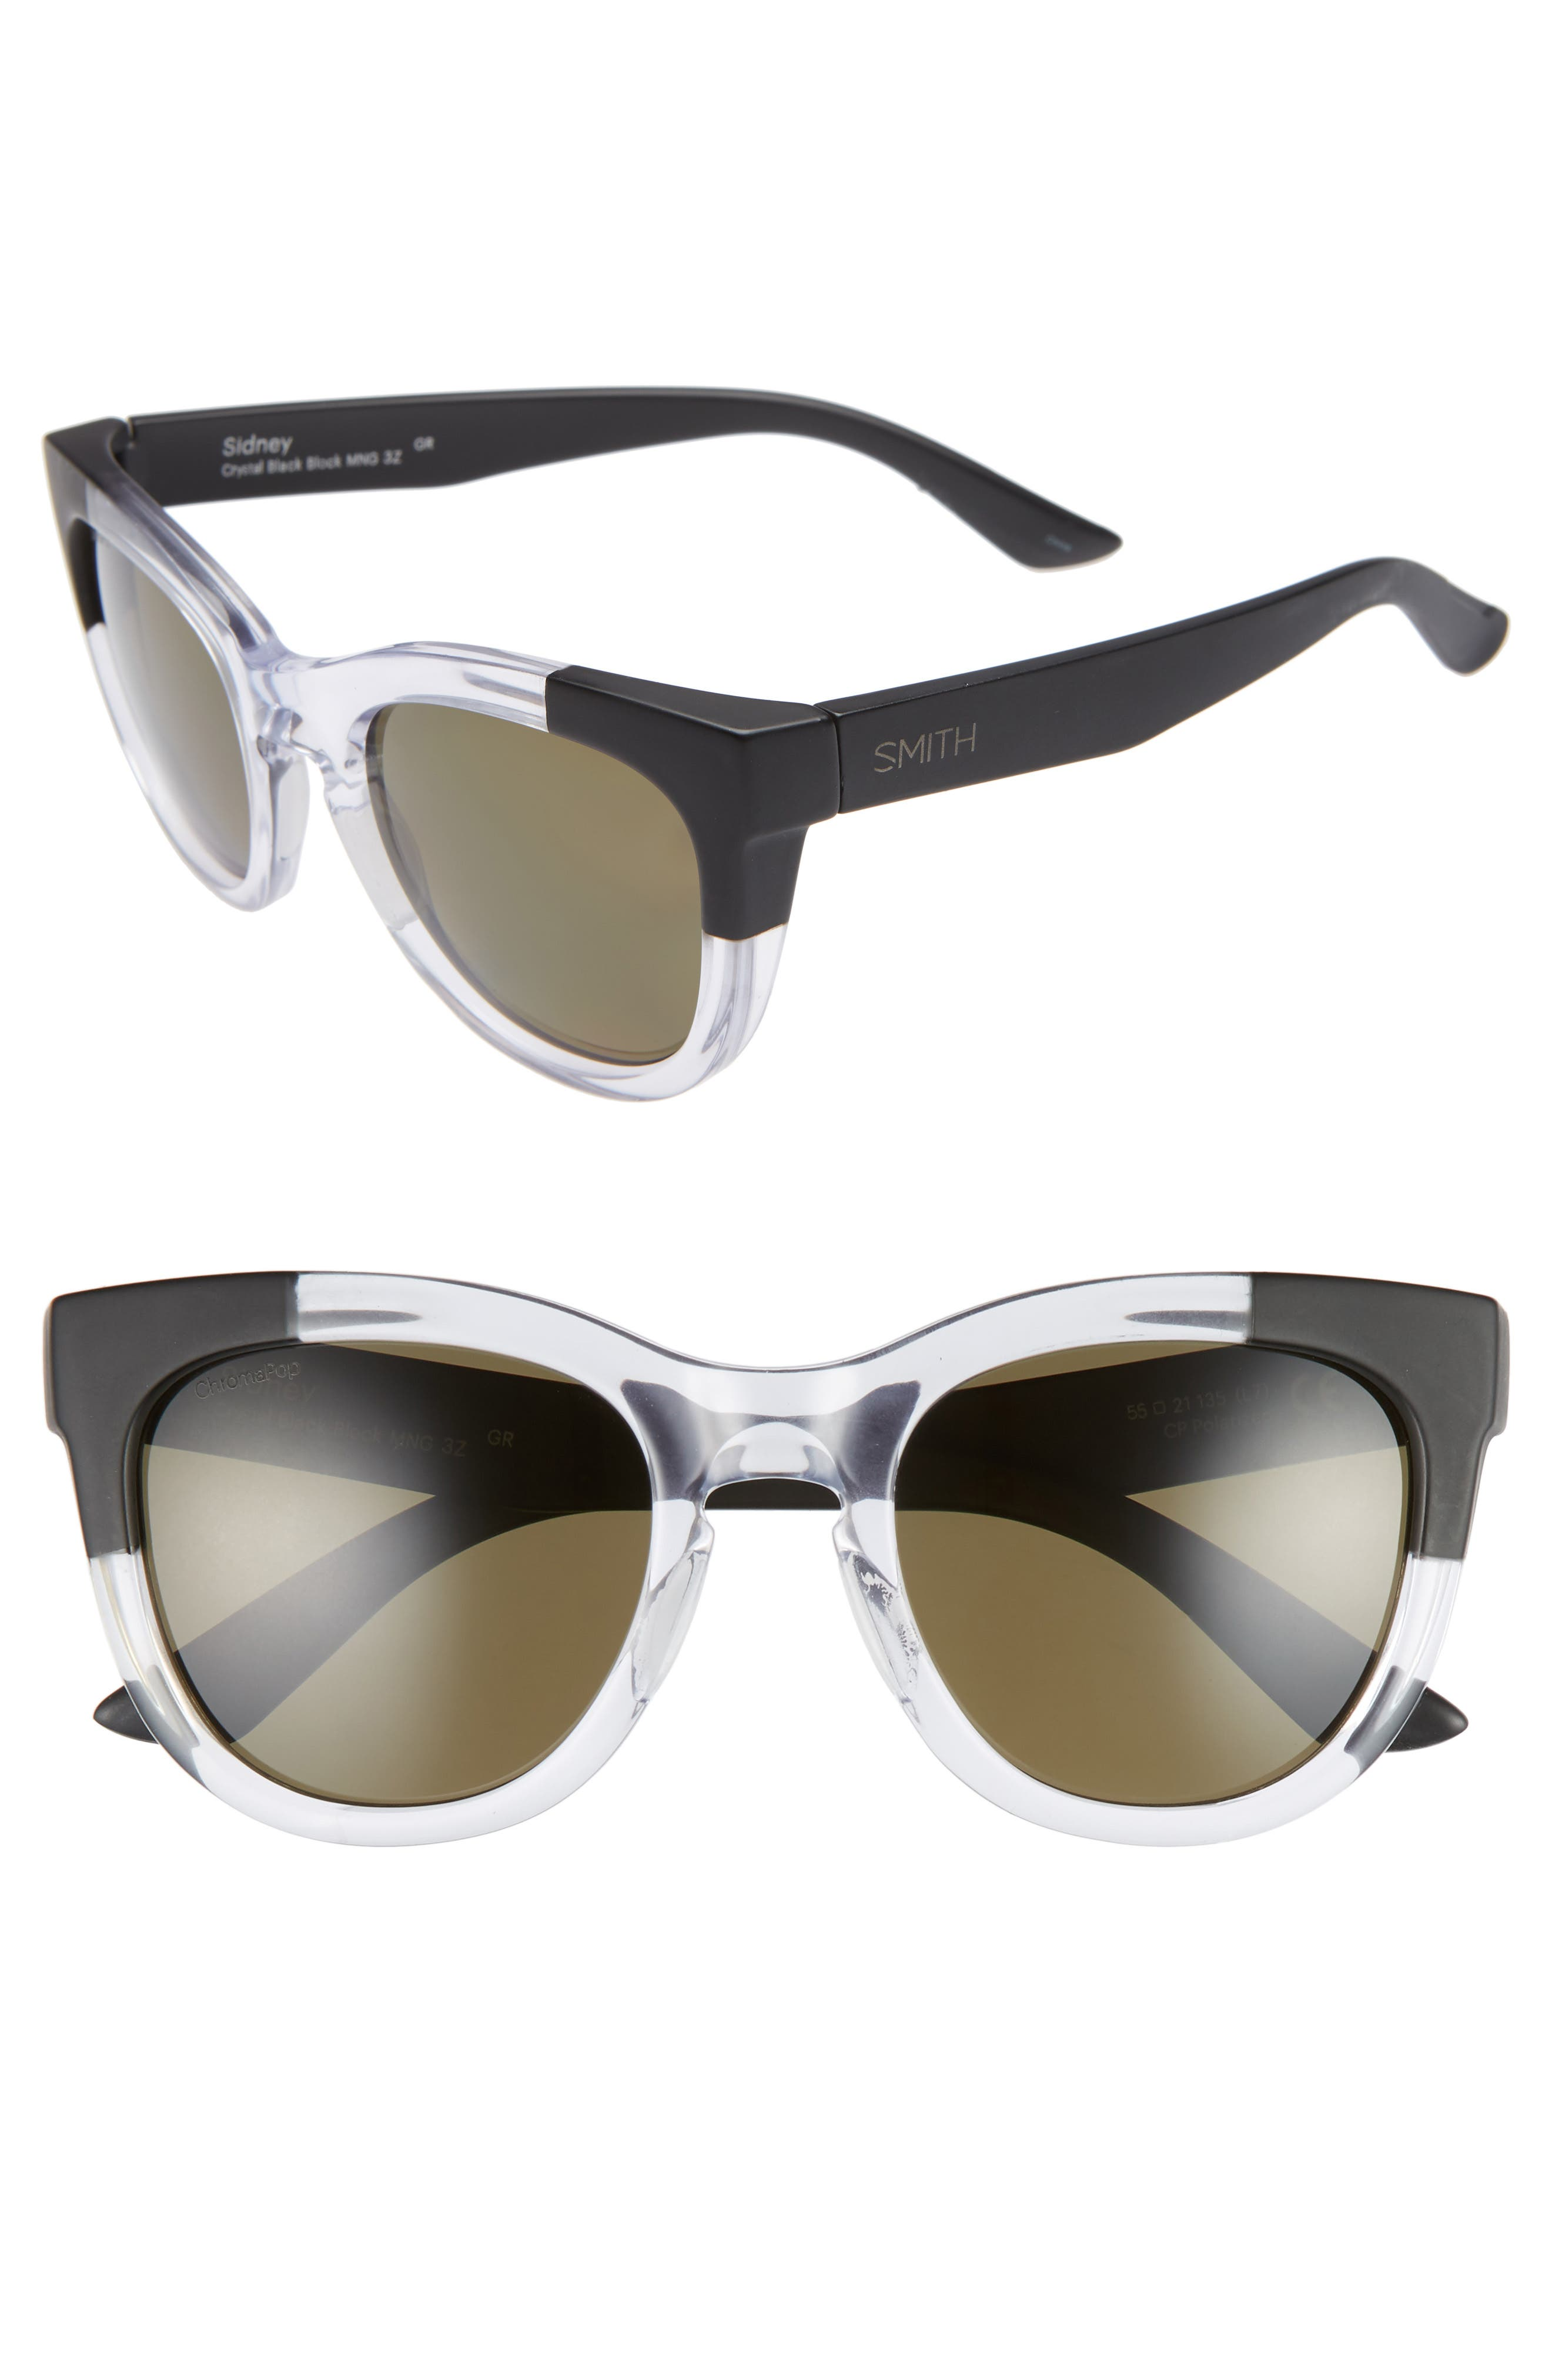 SMITH SIDNEY 55MM CHROMAPOP POLARIZED CAT EYE SUNGLASSES - CRYSTAL/ BLACK BLOCK